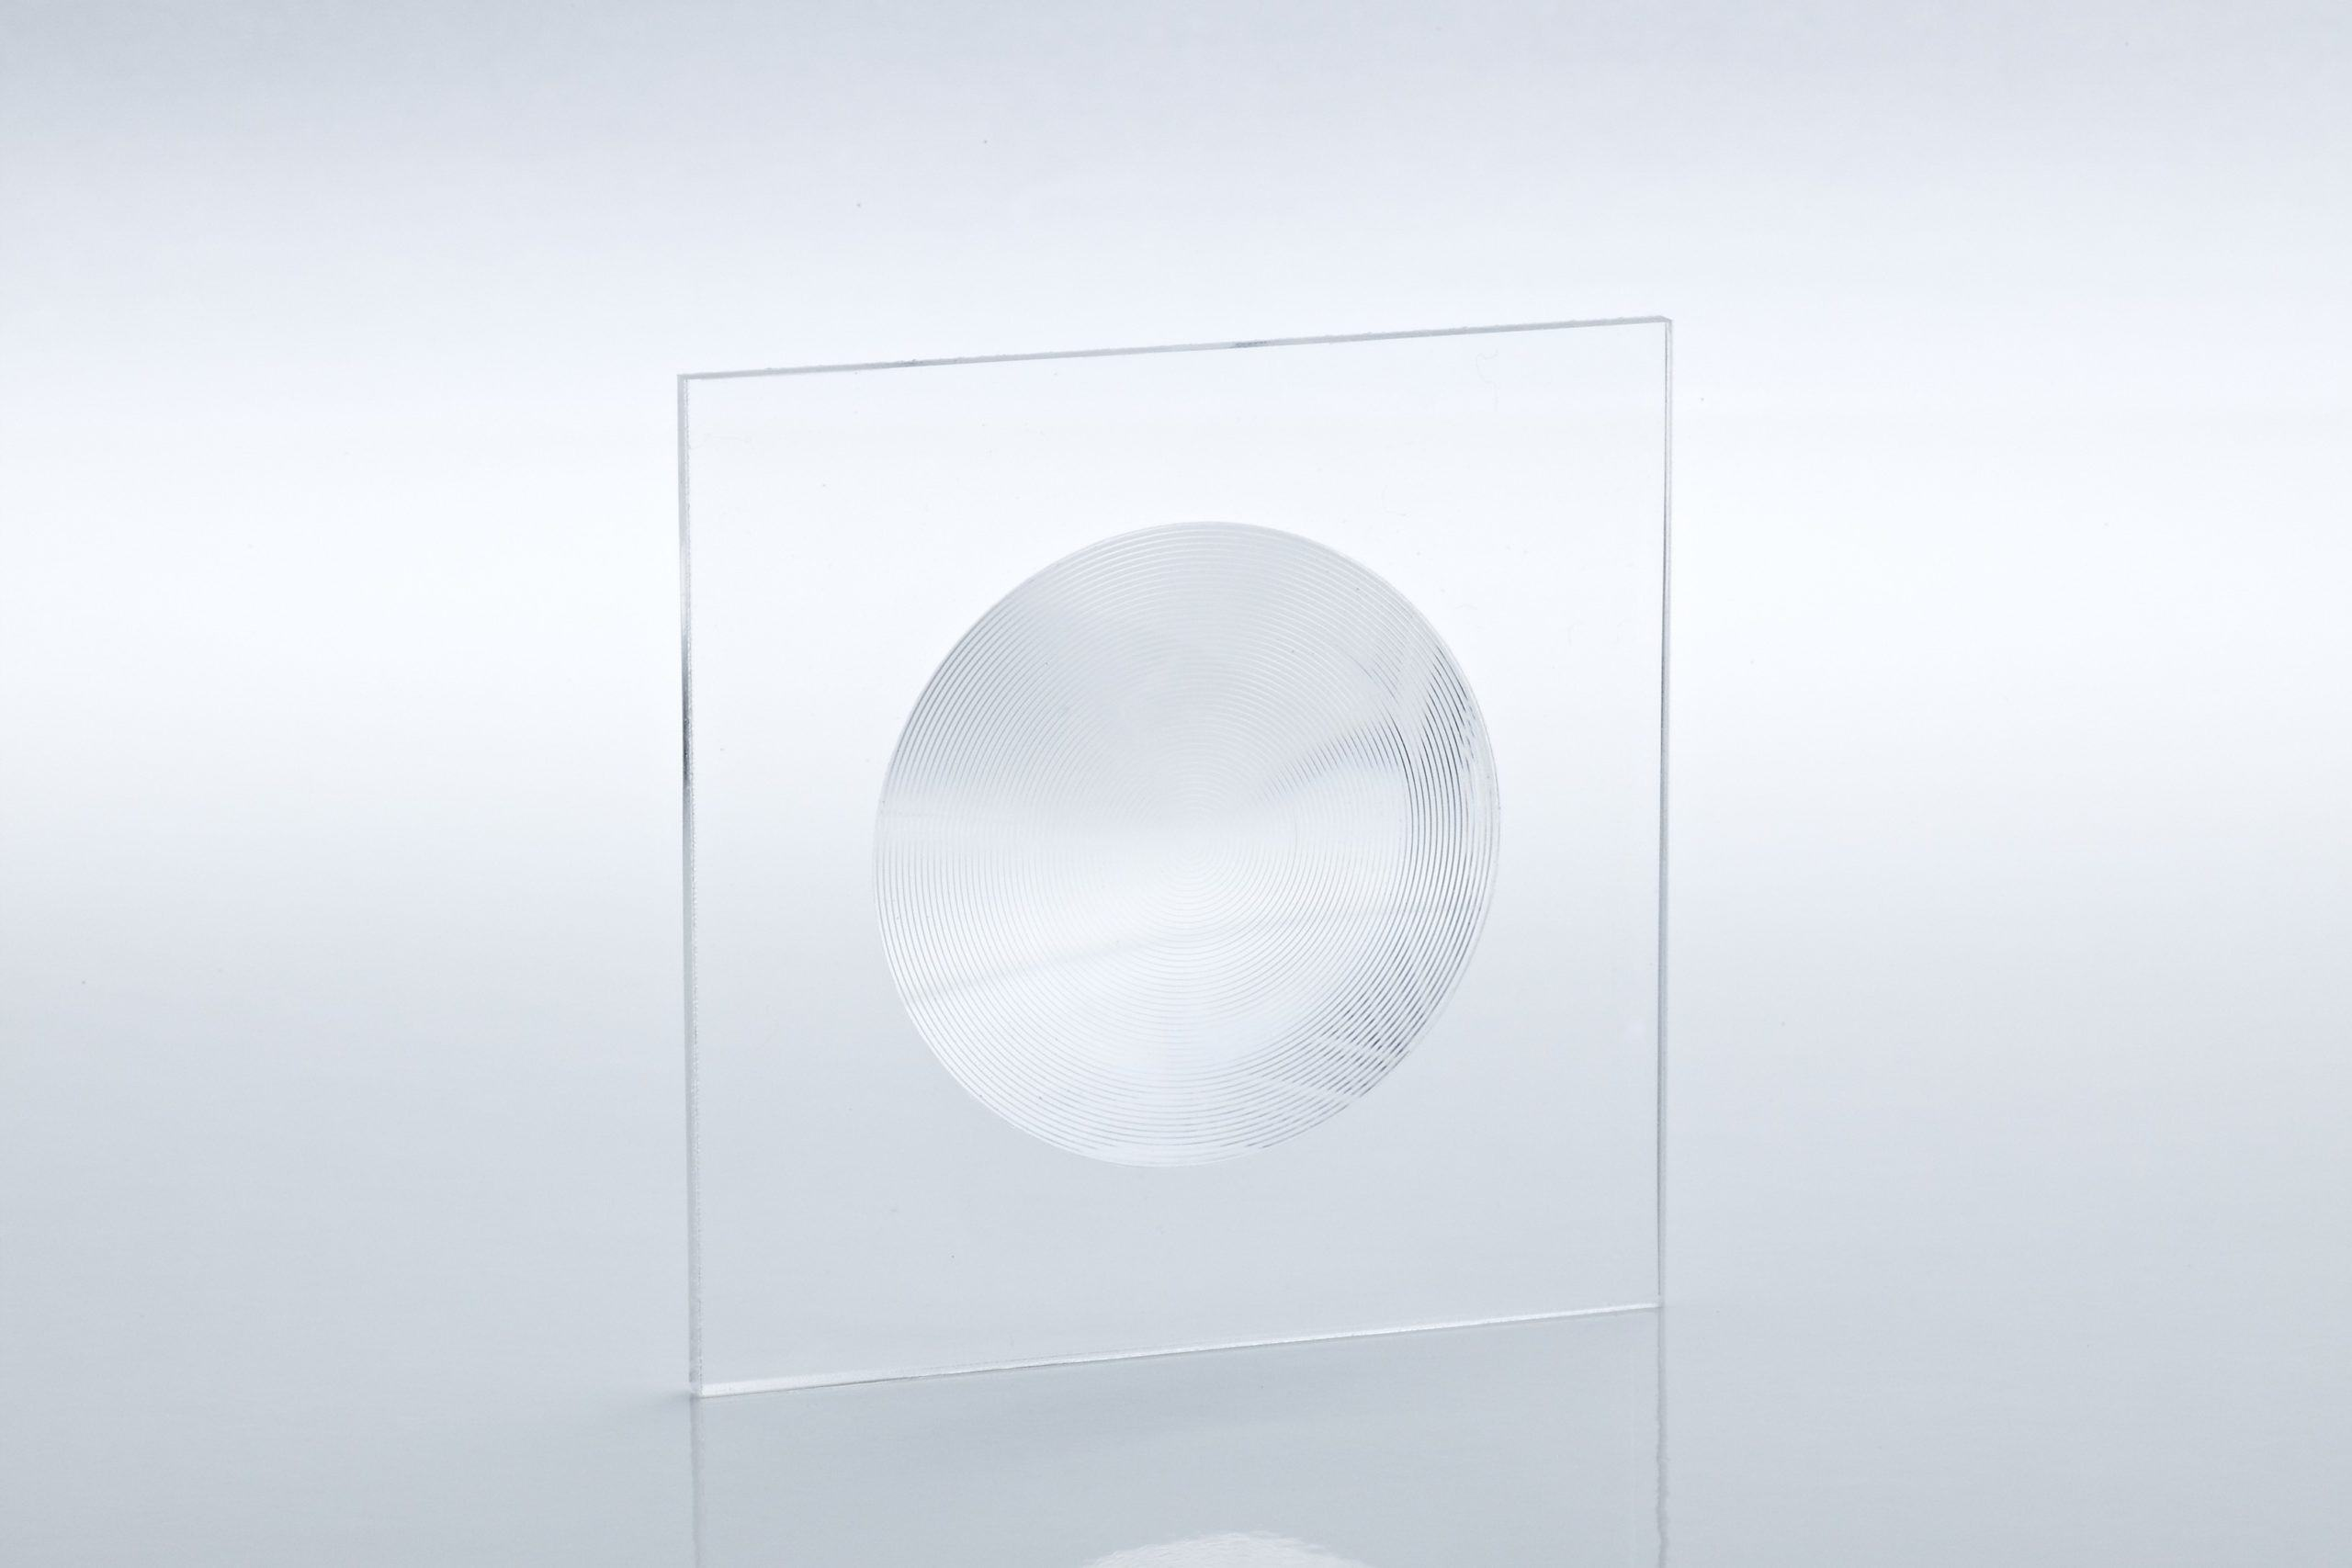 Fresnel lenses for the energy, utilities & renewable industries